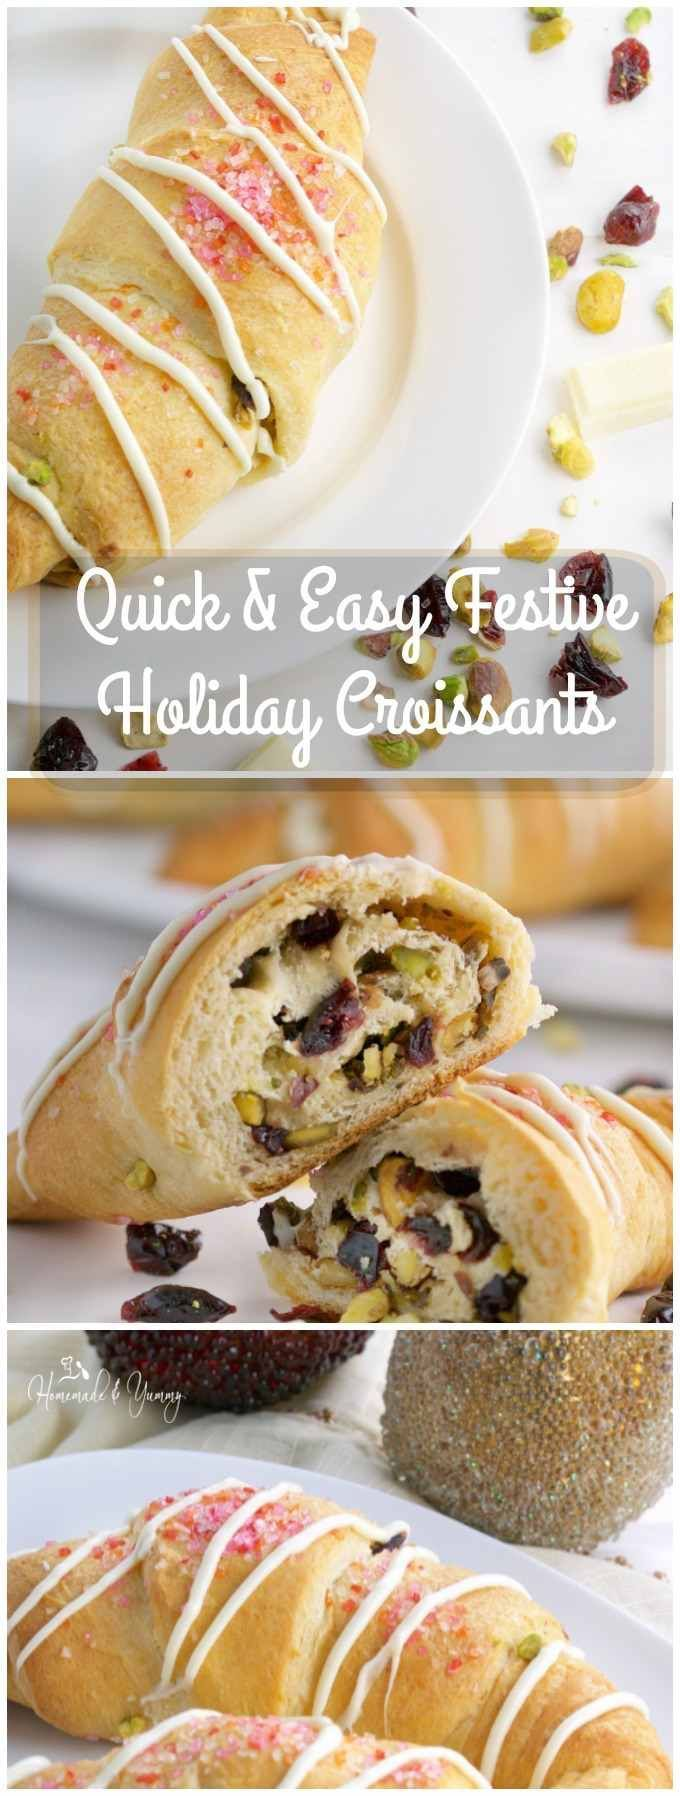 Quick & Easy Festive Holiday Croissants are perfect for weekend brunches. Filled with pistachios, cranberries and drizzled with white chocolate, they represent the colours of the holiday in taste and appearance.